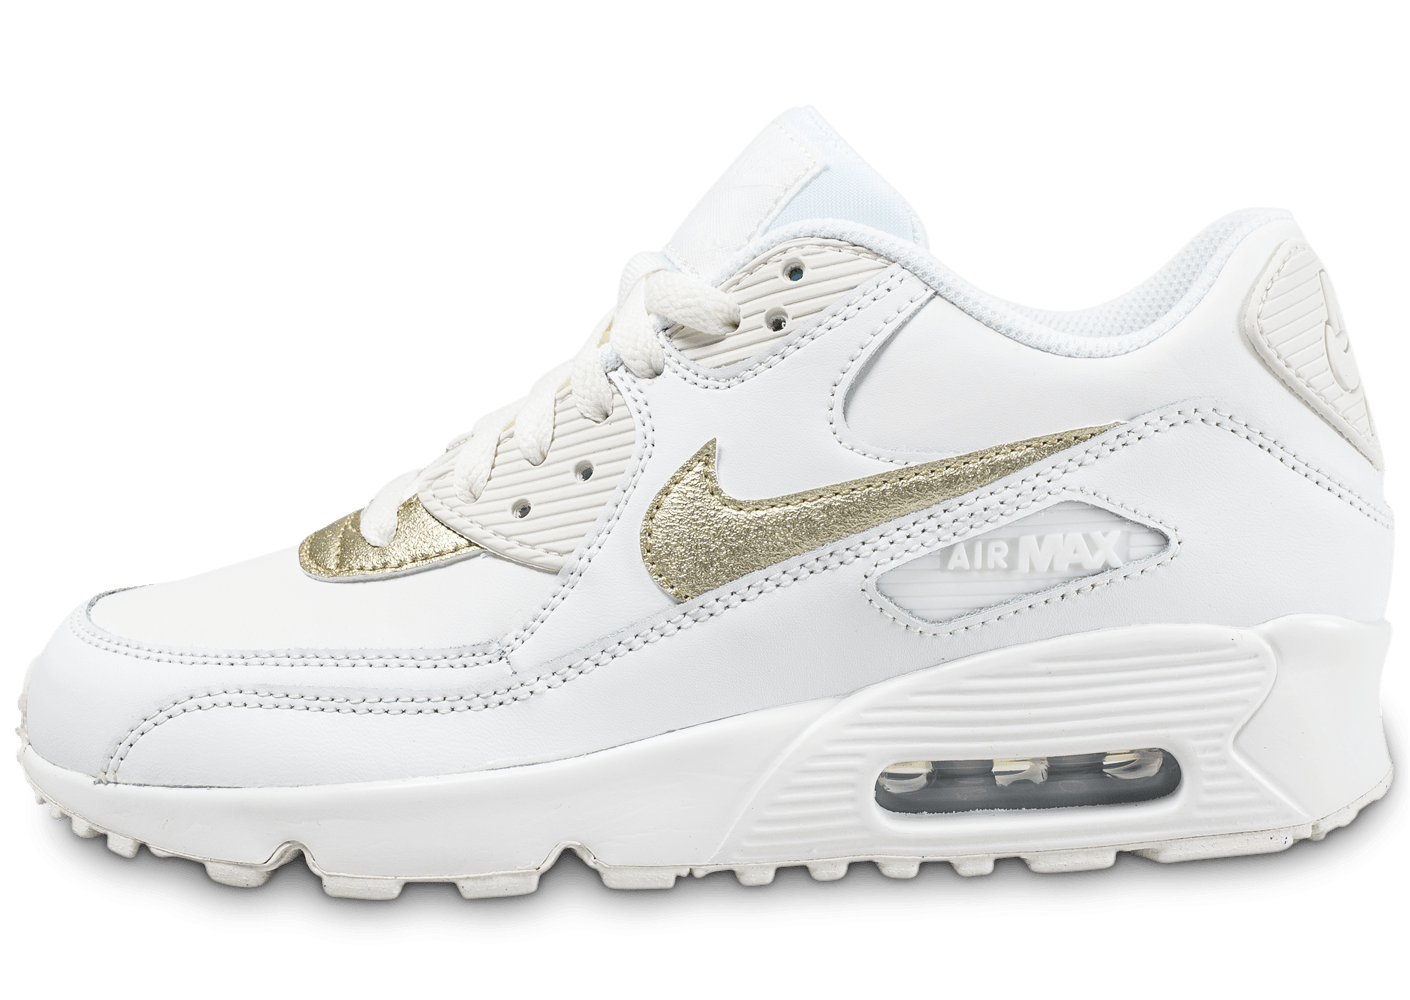 Nike Air Max 90 Leather Junior blanche et or - Chaussures Baskets femme - Chausport